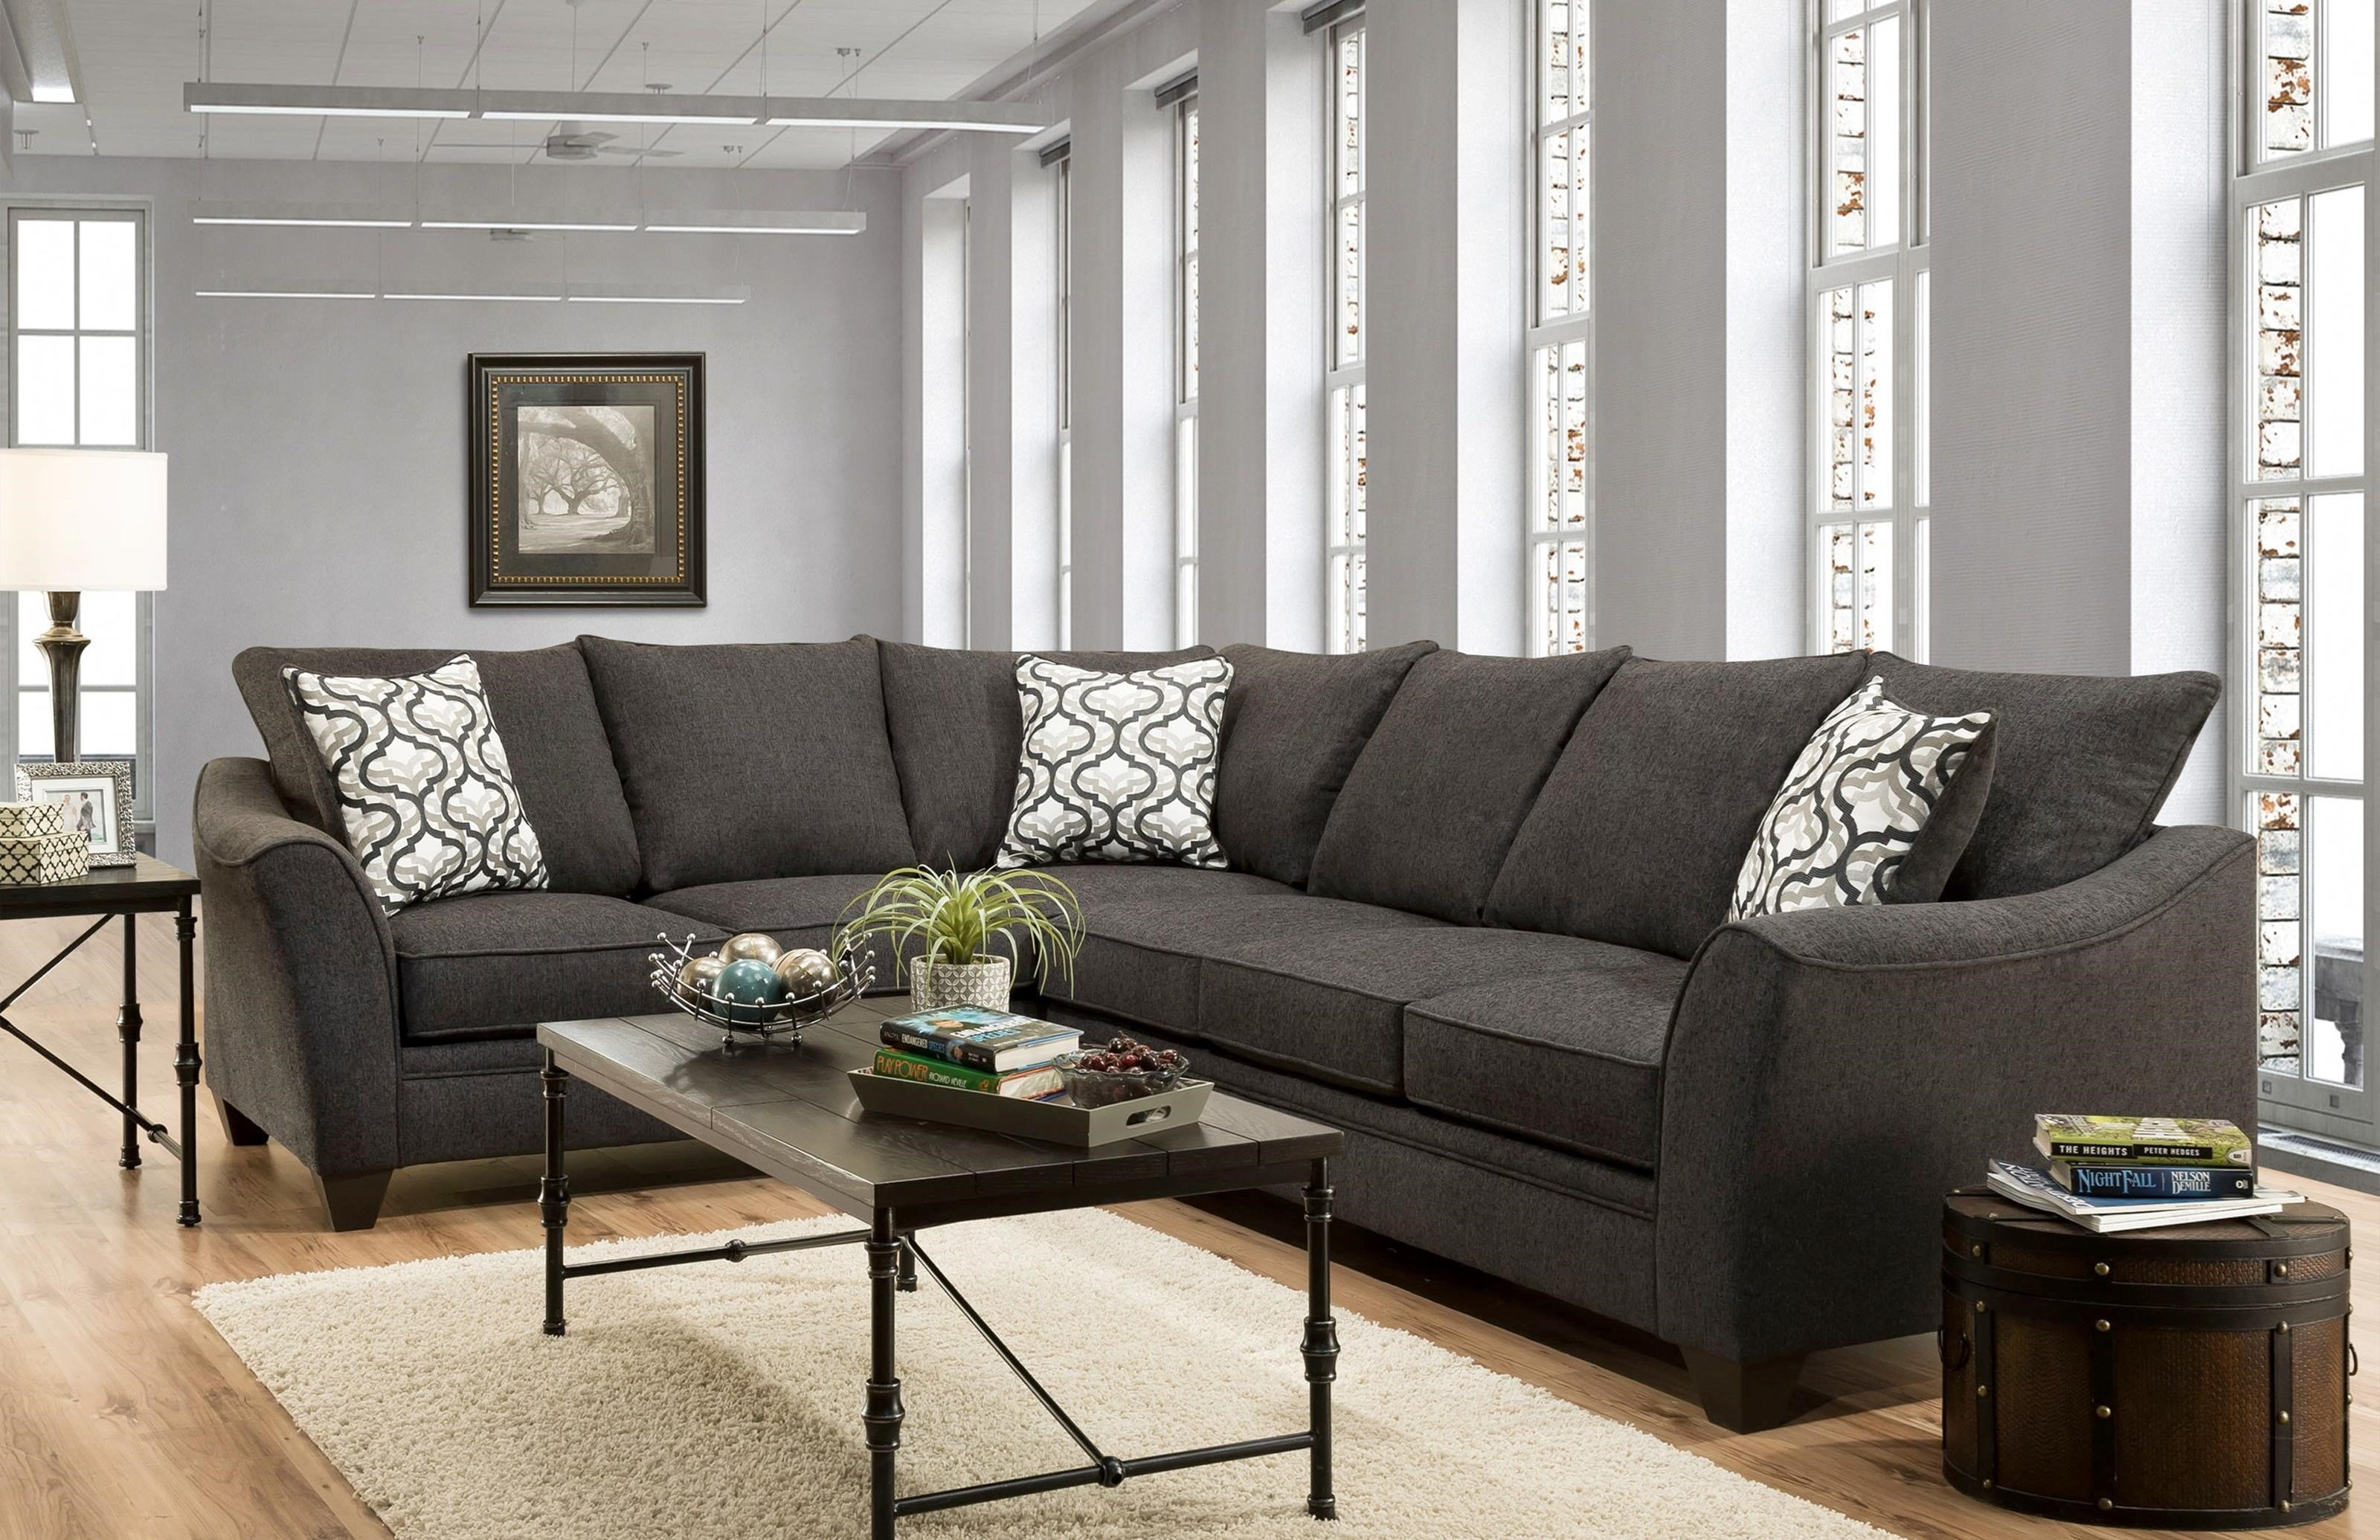 4810 5 Seat Sectional Sofa by Peak Living at Prime Brothers Furniture